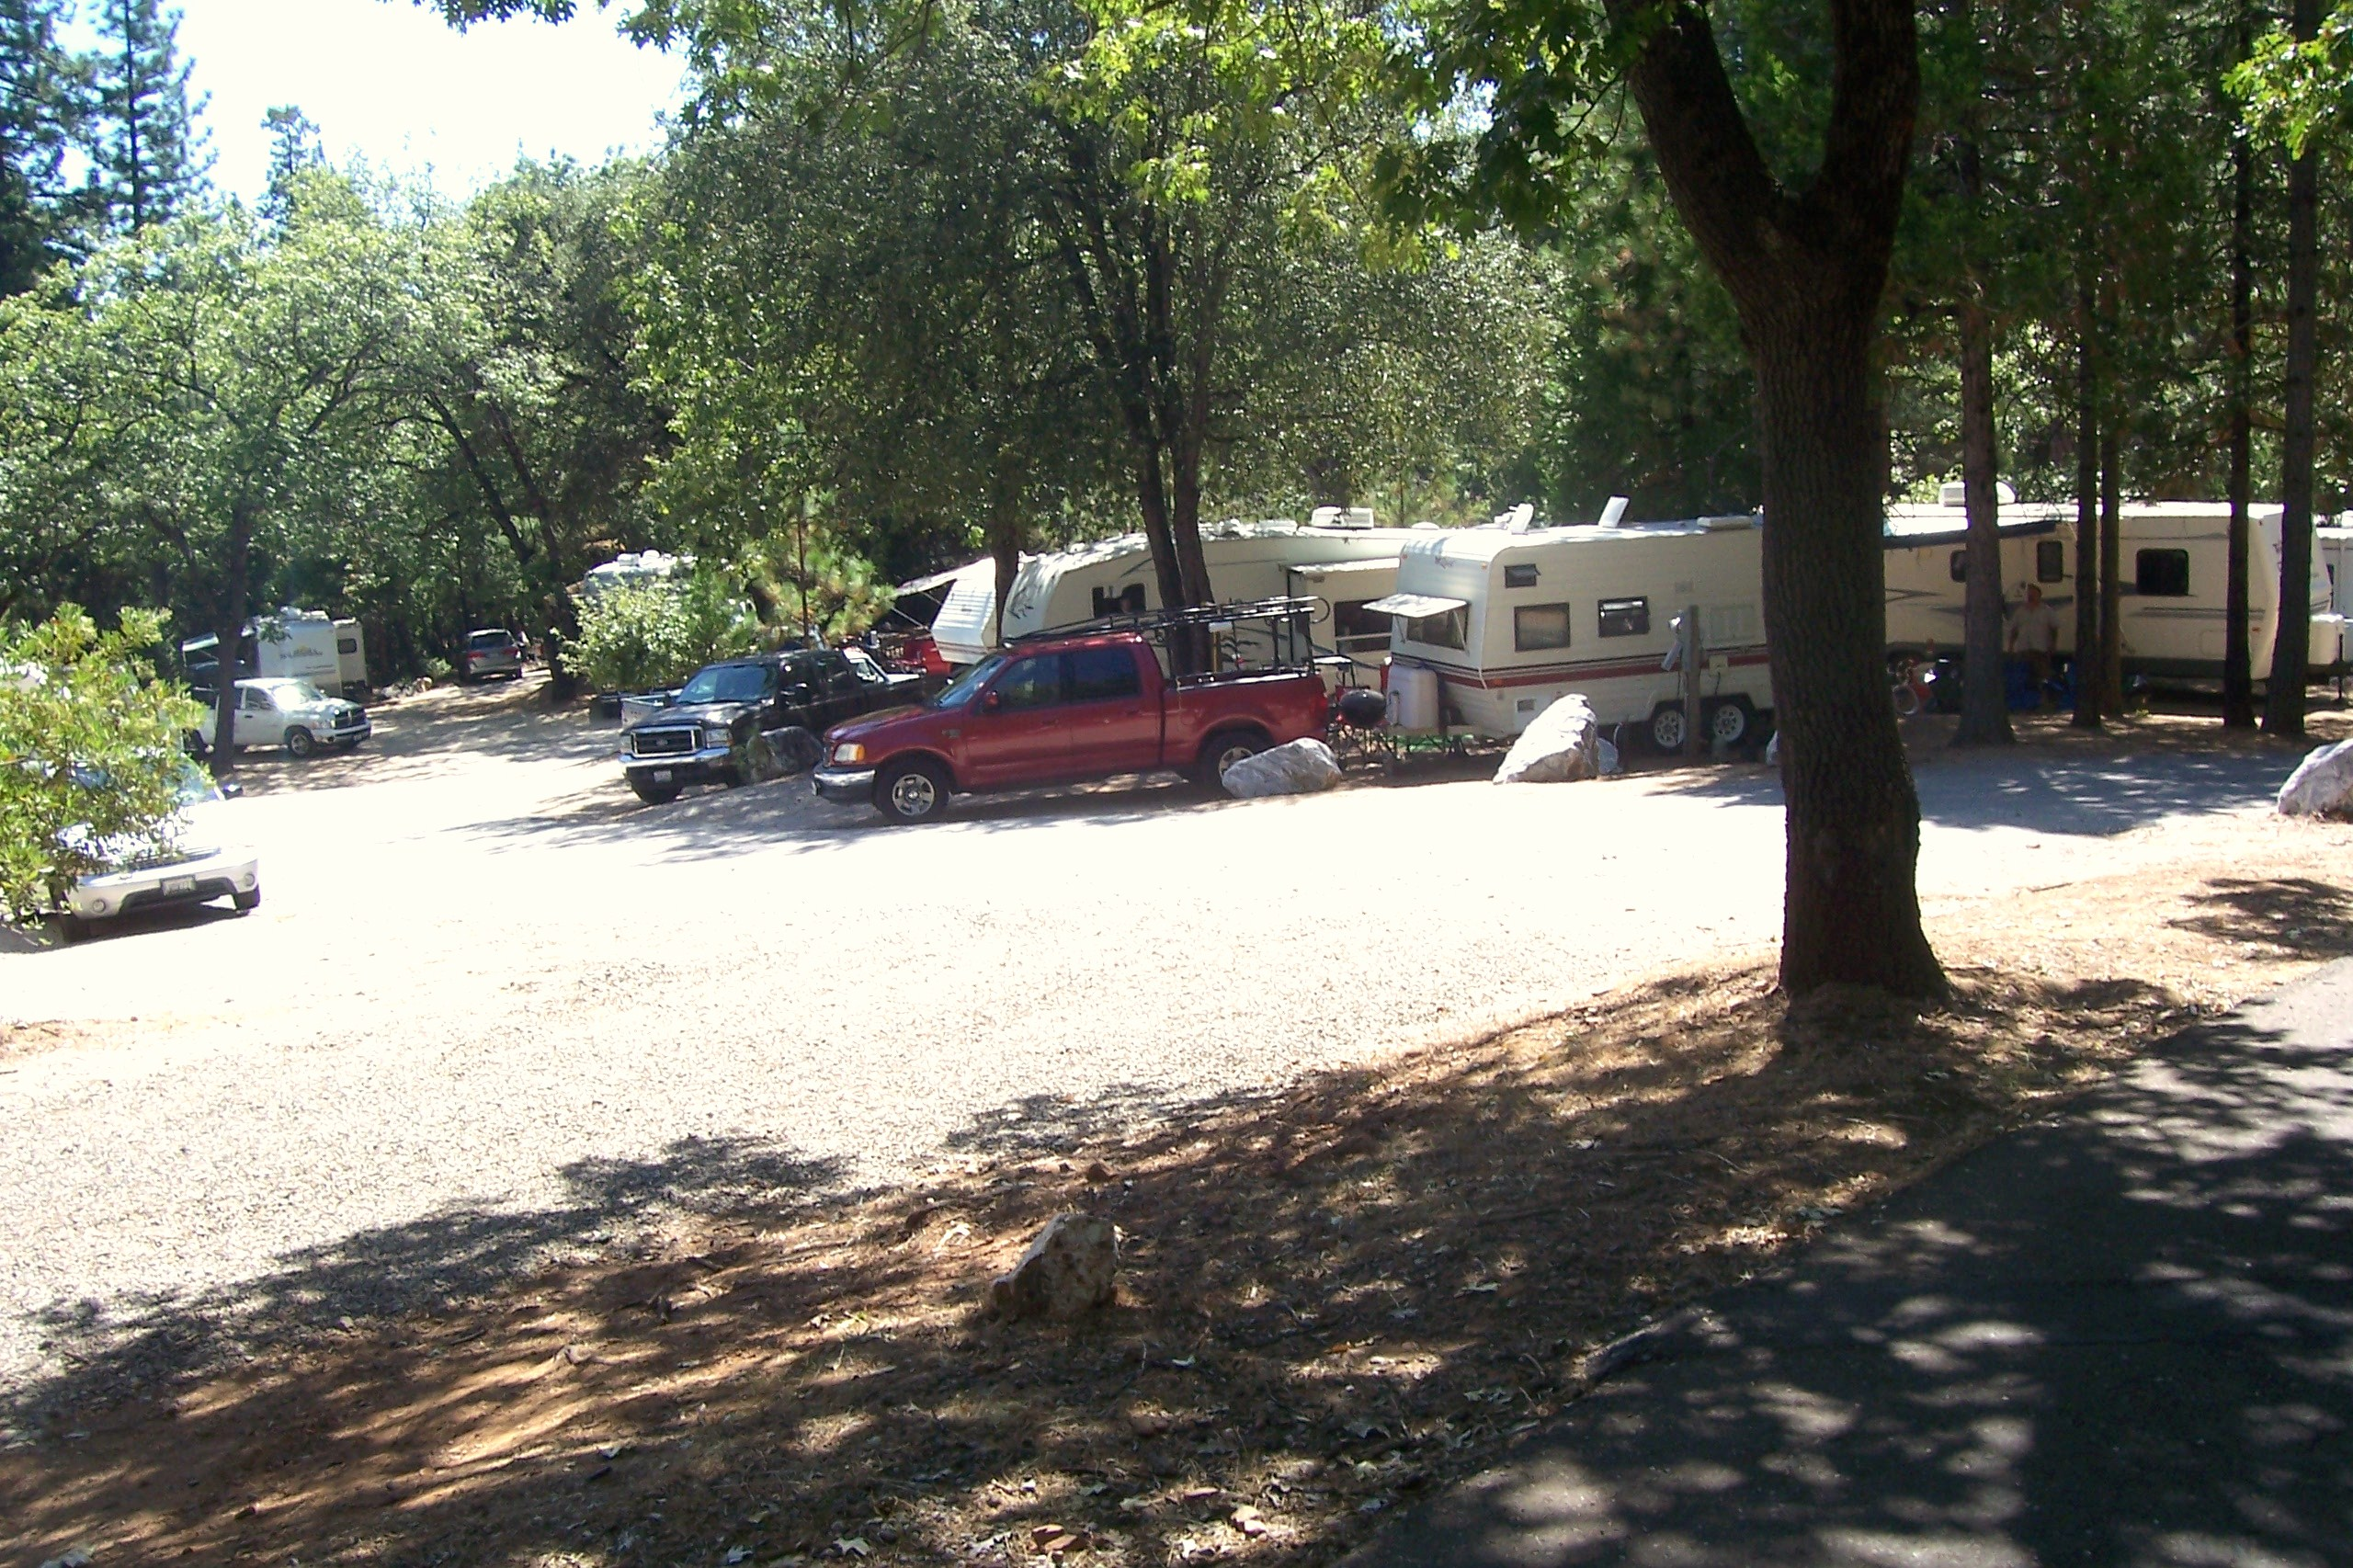 44 Top RV Parks and Resorts to Explore - Rocky Mountain RV